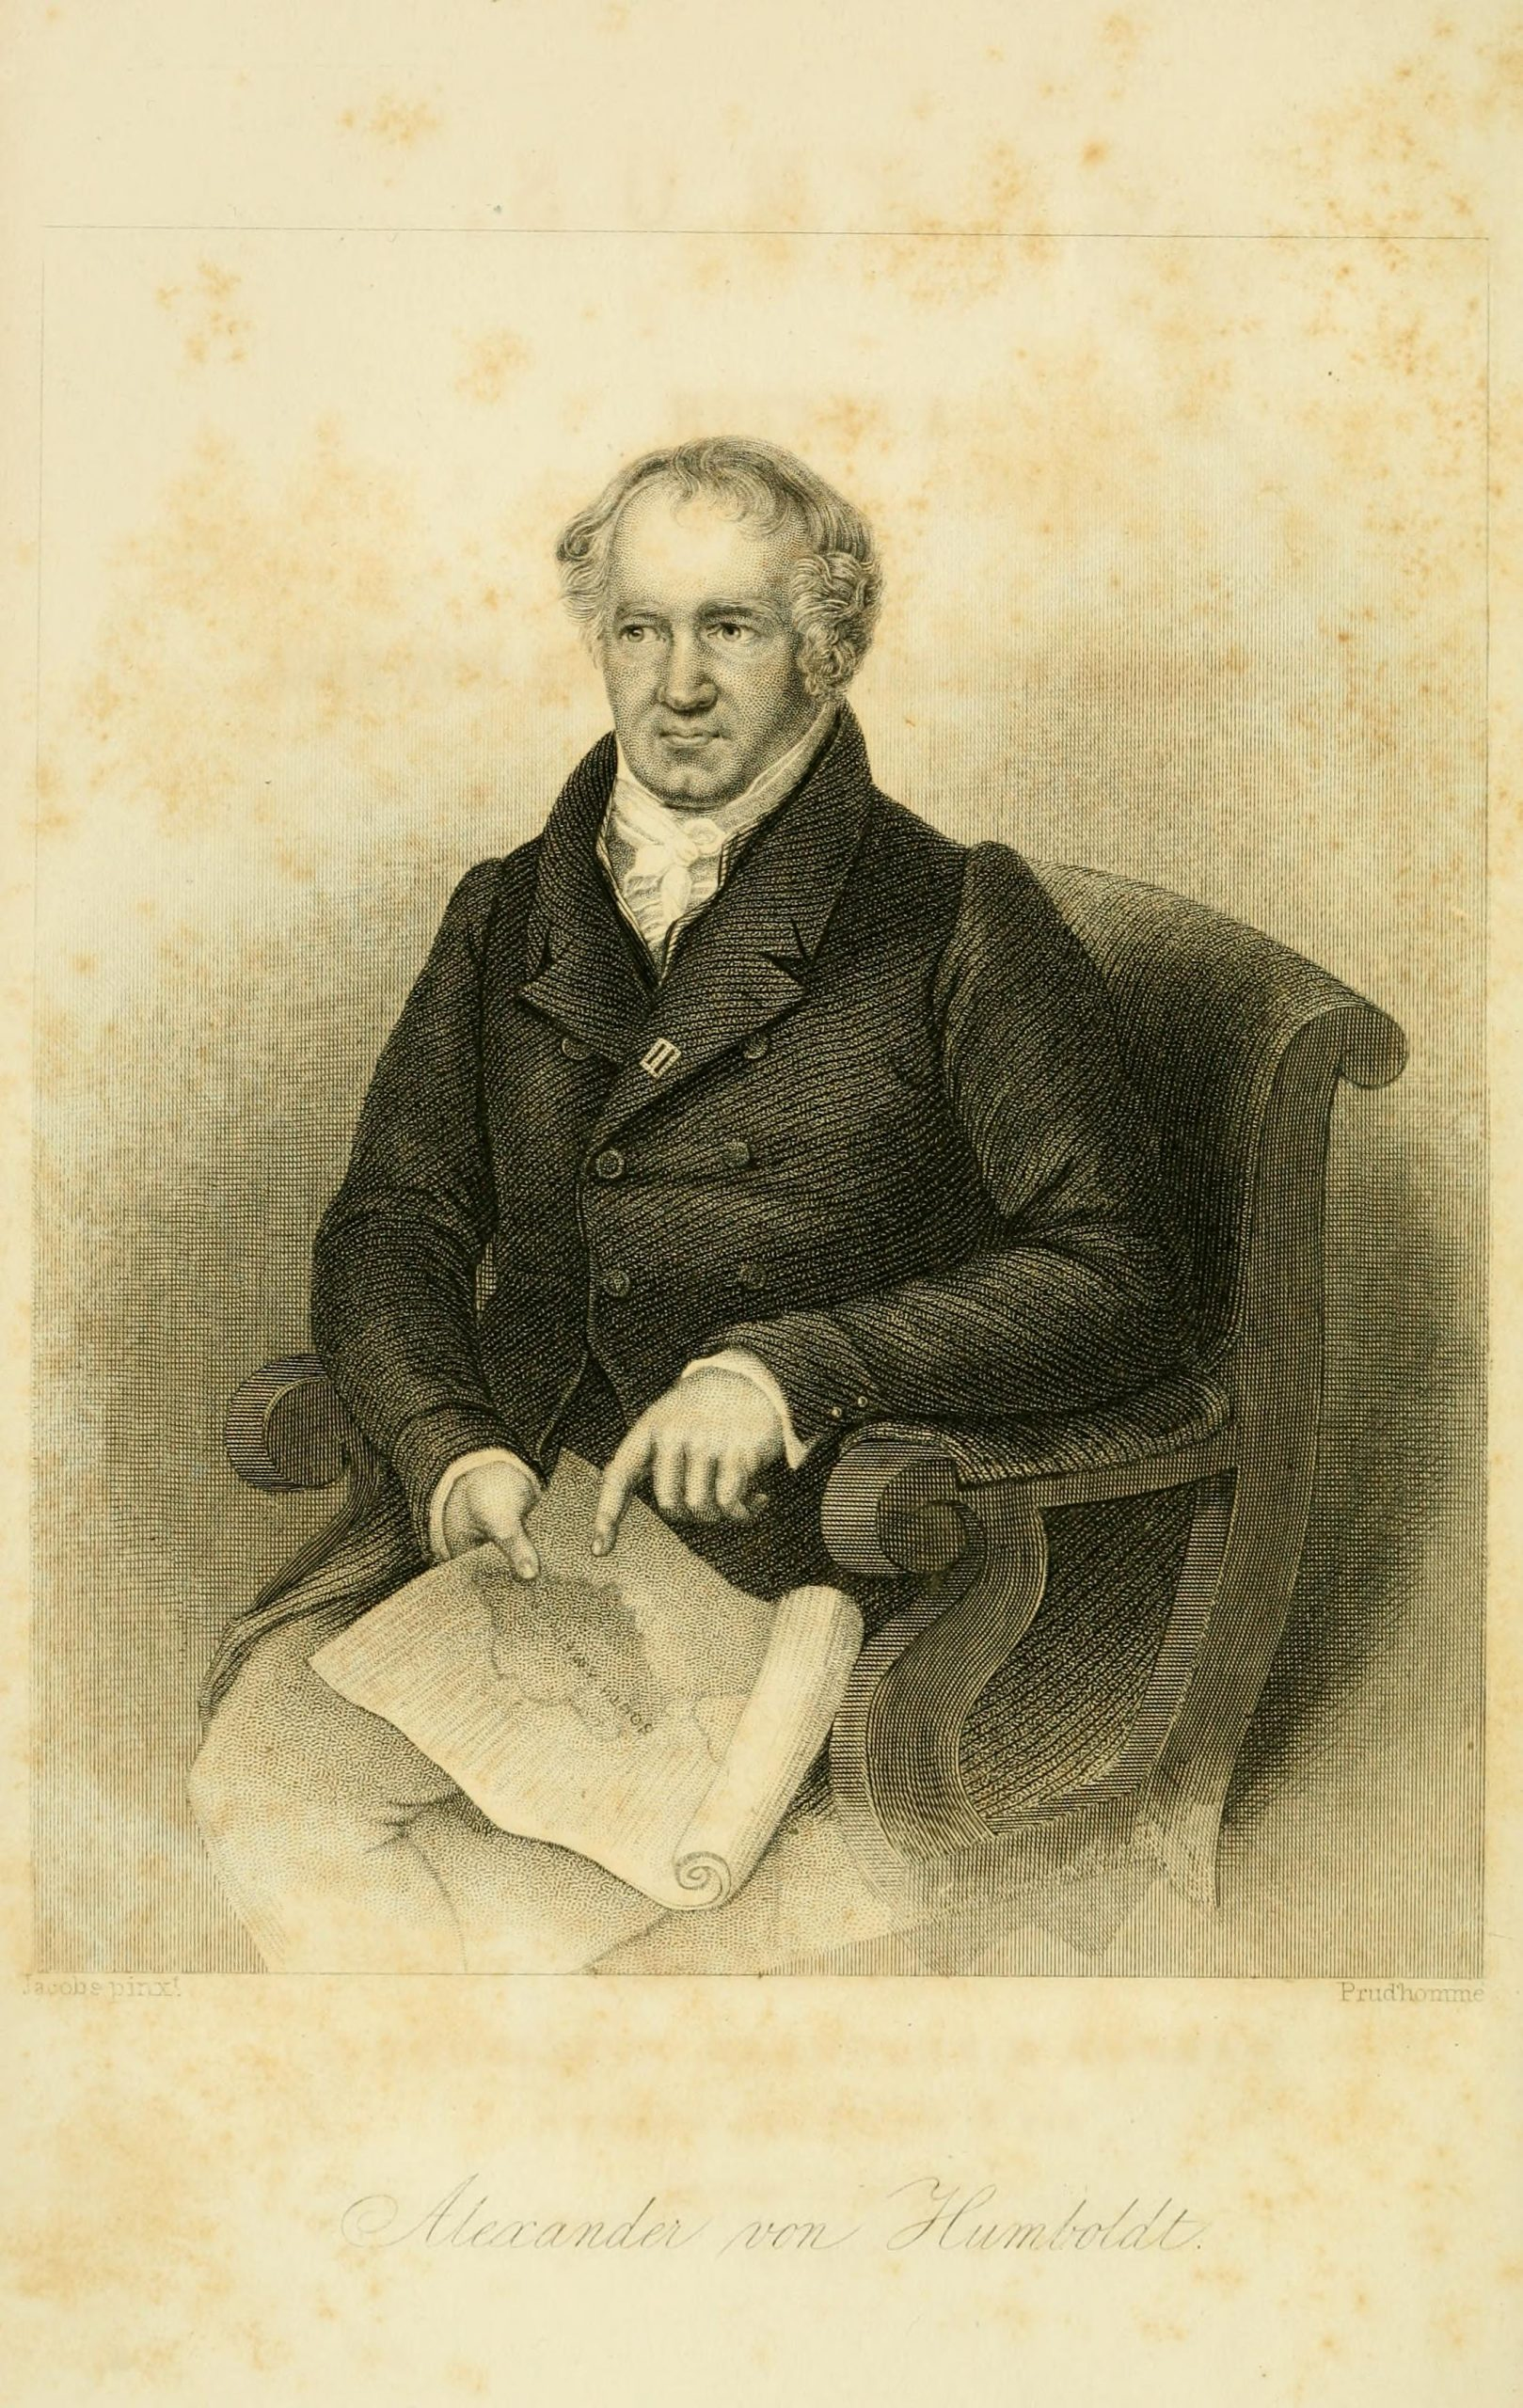 Black and white illustration of a man with receding hair dressed in 19th century clothing sitting in a chair, pointing to a map in his lap.